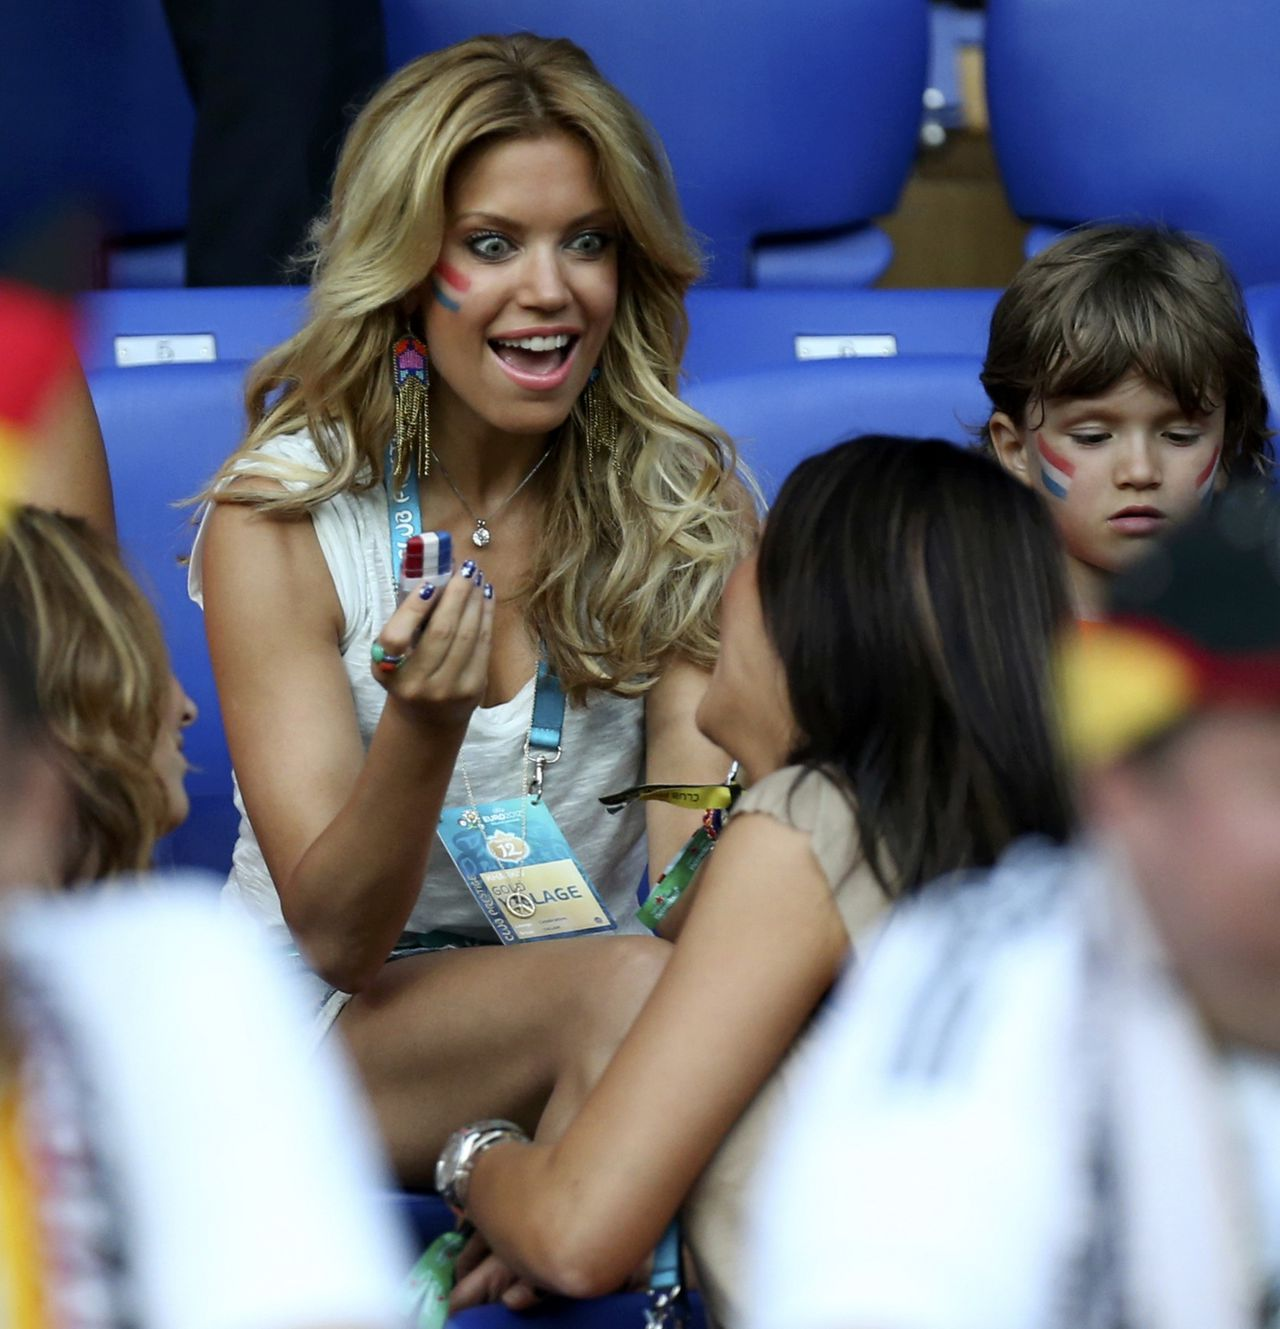 Netherlands' Rafael van der Vaart's wife Sylvie reacts before the Euro 2012 soccer match between Netherland and Germany in Kharkiv June 13, 2012. REUTERS/Thomas Bohlen (POLAND - Tags: SPORT SOCCER)